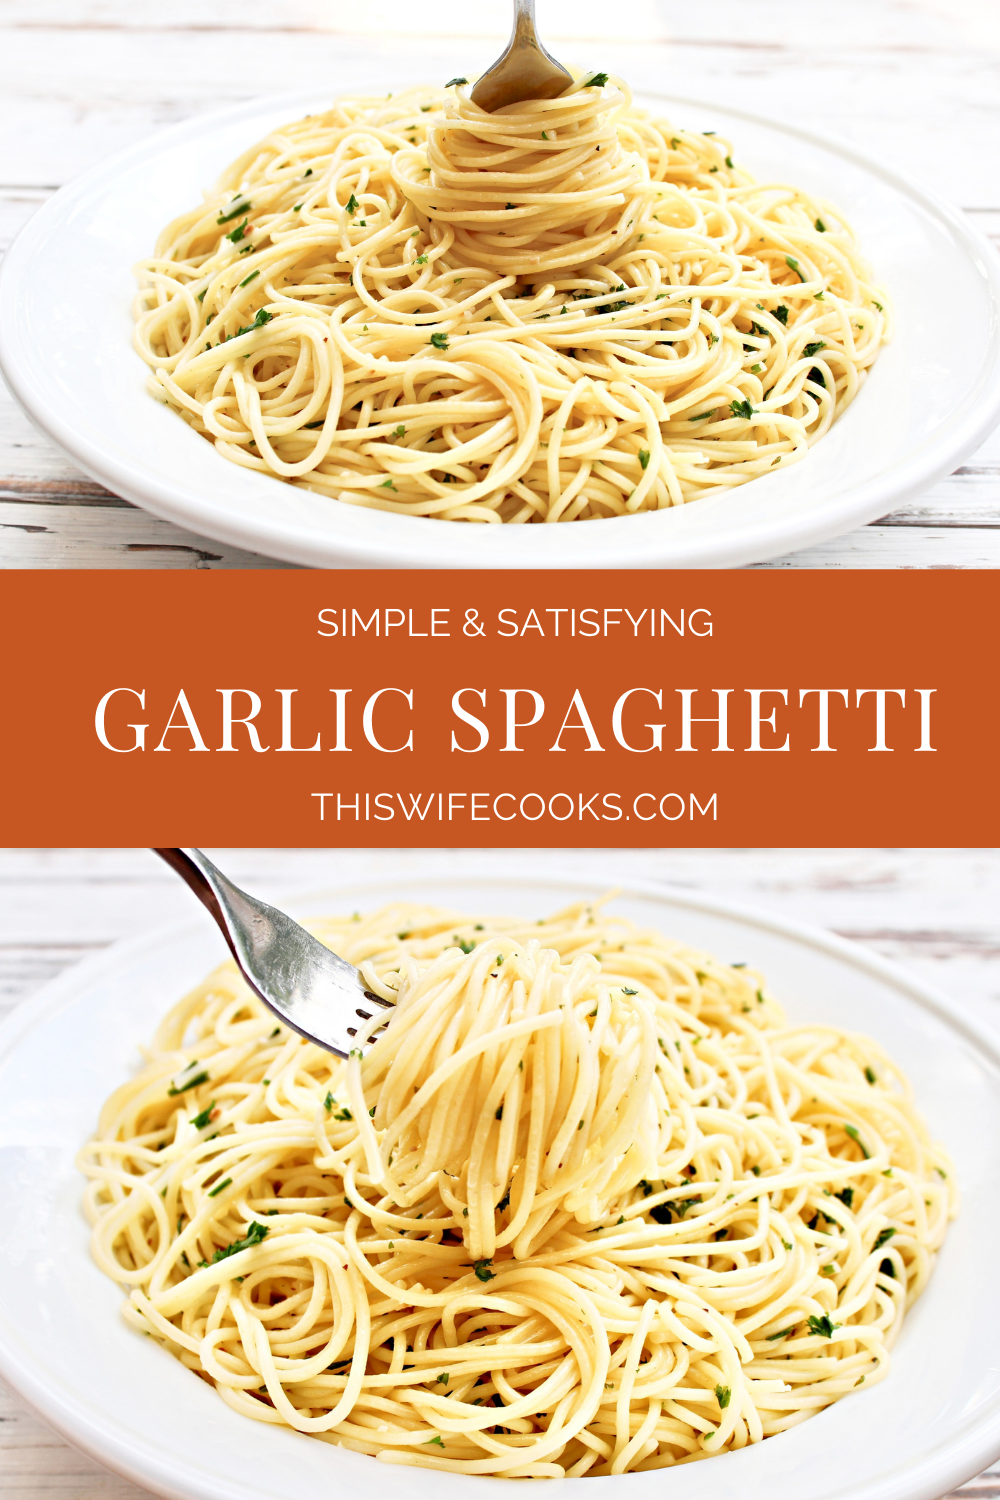 Garlic Spaghetti ~ 15 minutes and six simple ingredients. This quick and easy, one-pot, budget-friendly pasta dinner is perfect for busy days! via @thiswifecooks